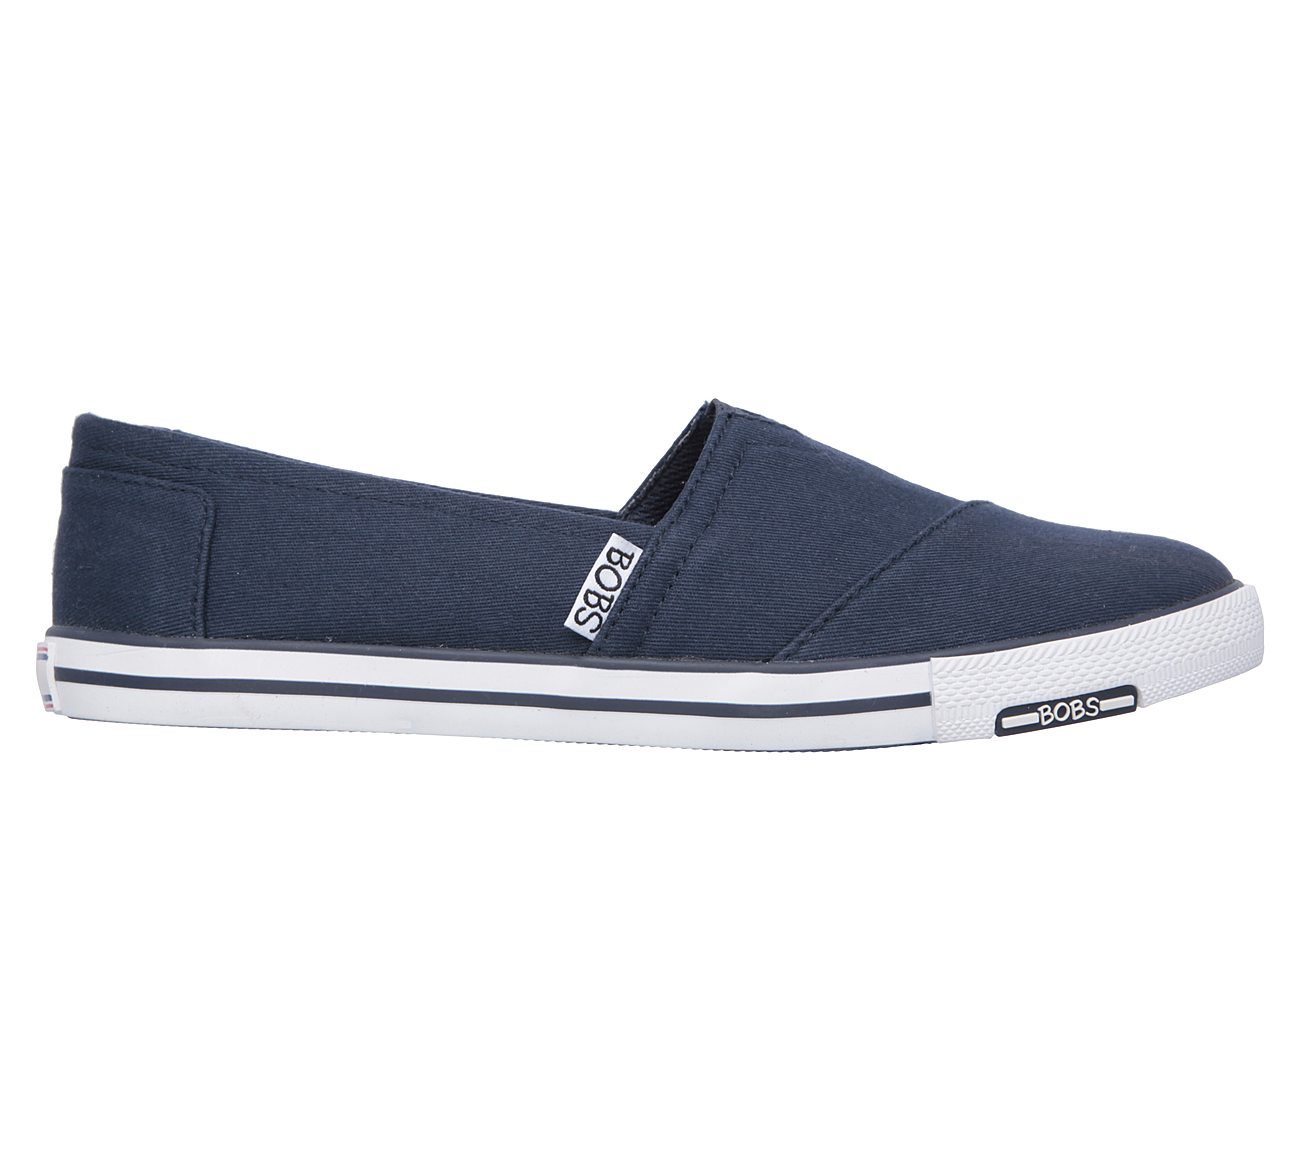 1cbf2998a69 Buy SKECHERS Bobs Lo-Topia - Pleasantville BOBS Shoes only  63.00